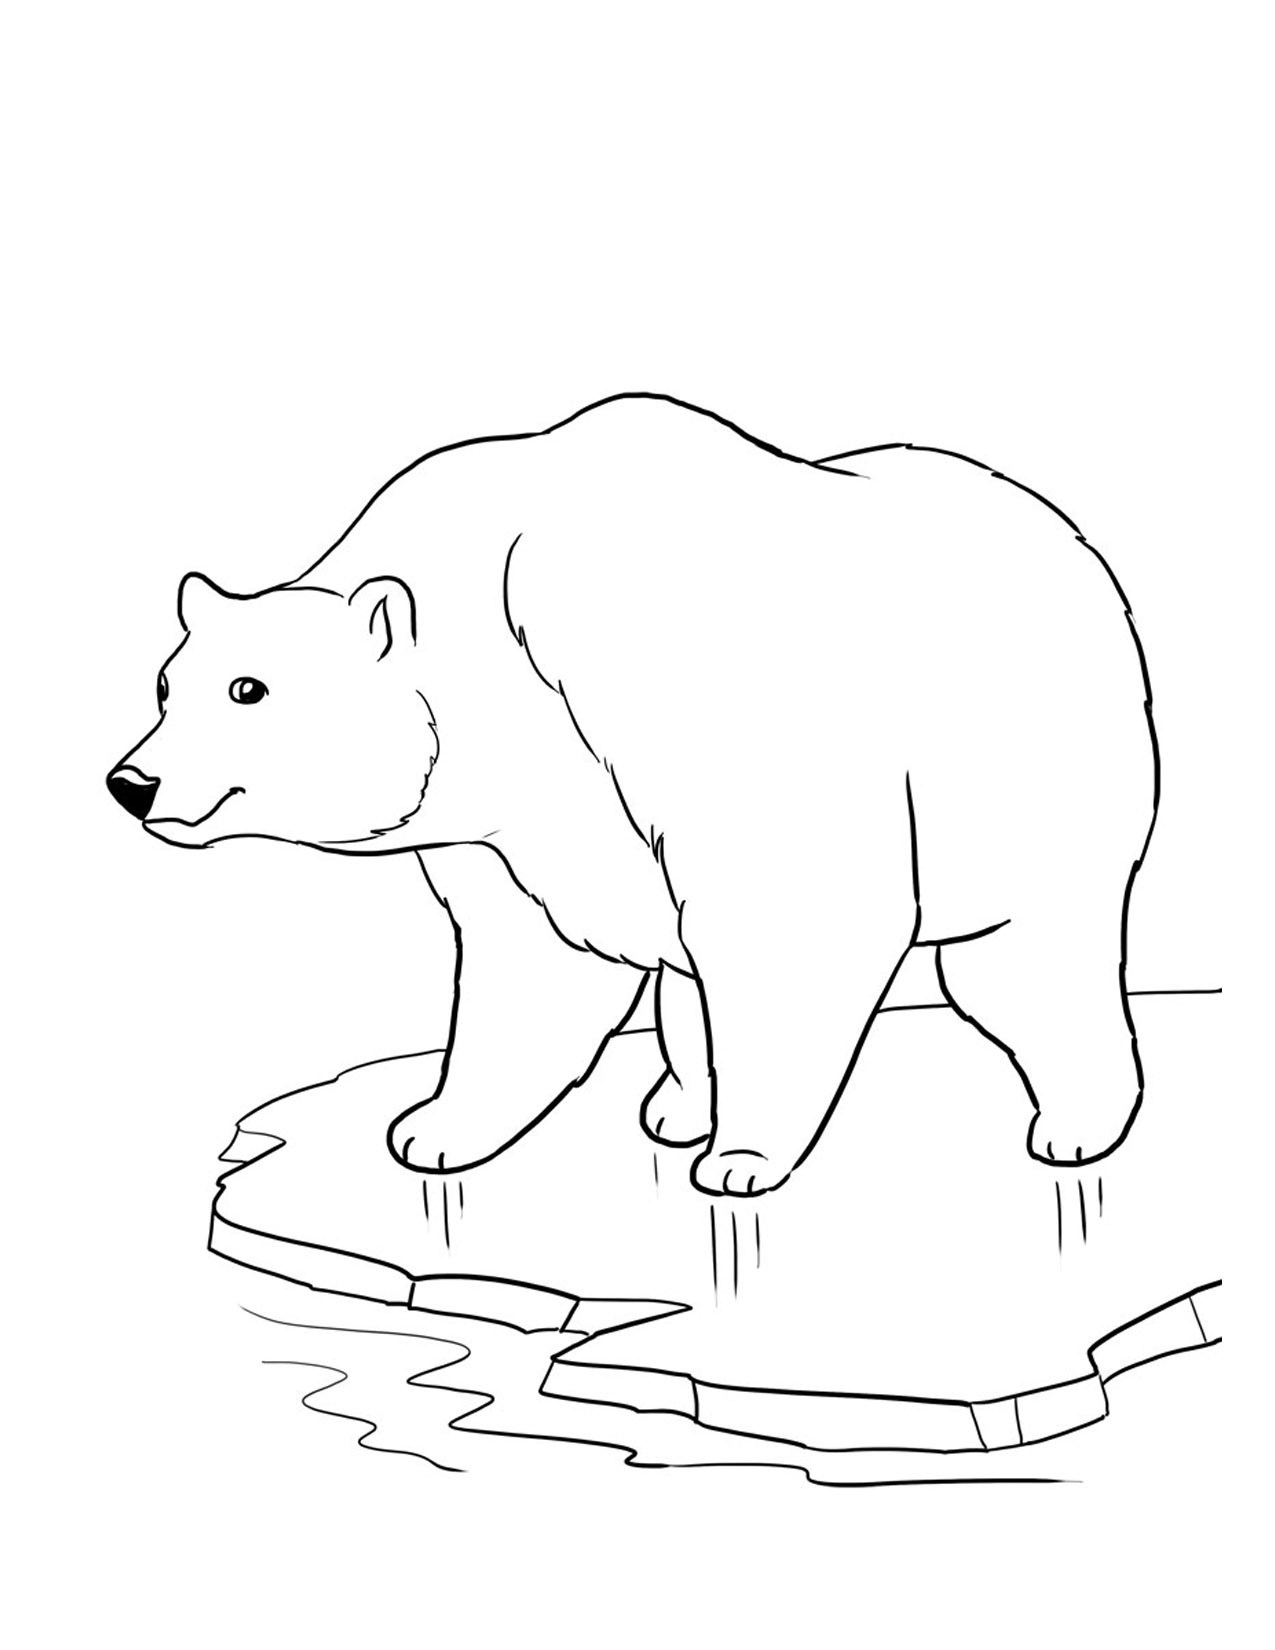 Polar Bears Coloring Pages. Printable Polar Bear Coloring Pages - Polar Bear Printable Pictures Free